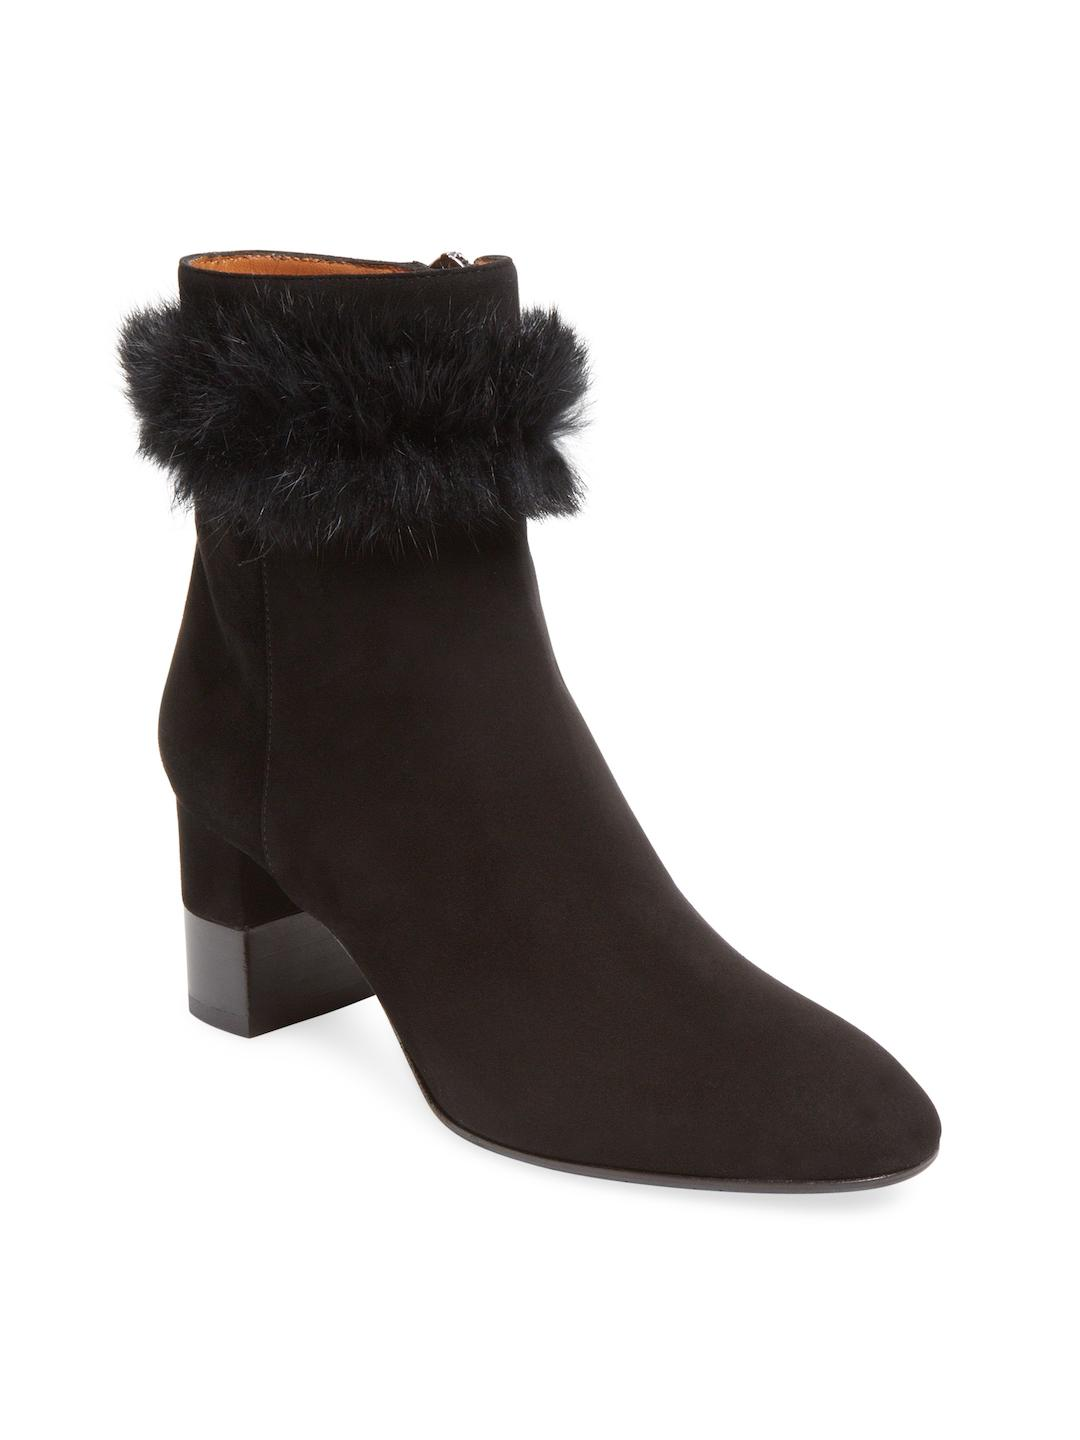 Aquatalia Elle Suede Ankle Boots cheap sale limited edition shop cheap price sast online buy cheap online buy online with paypal a6KxOA